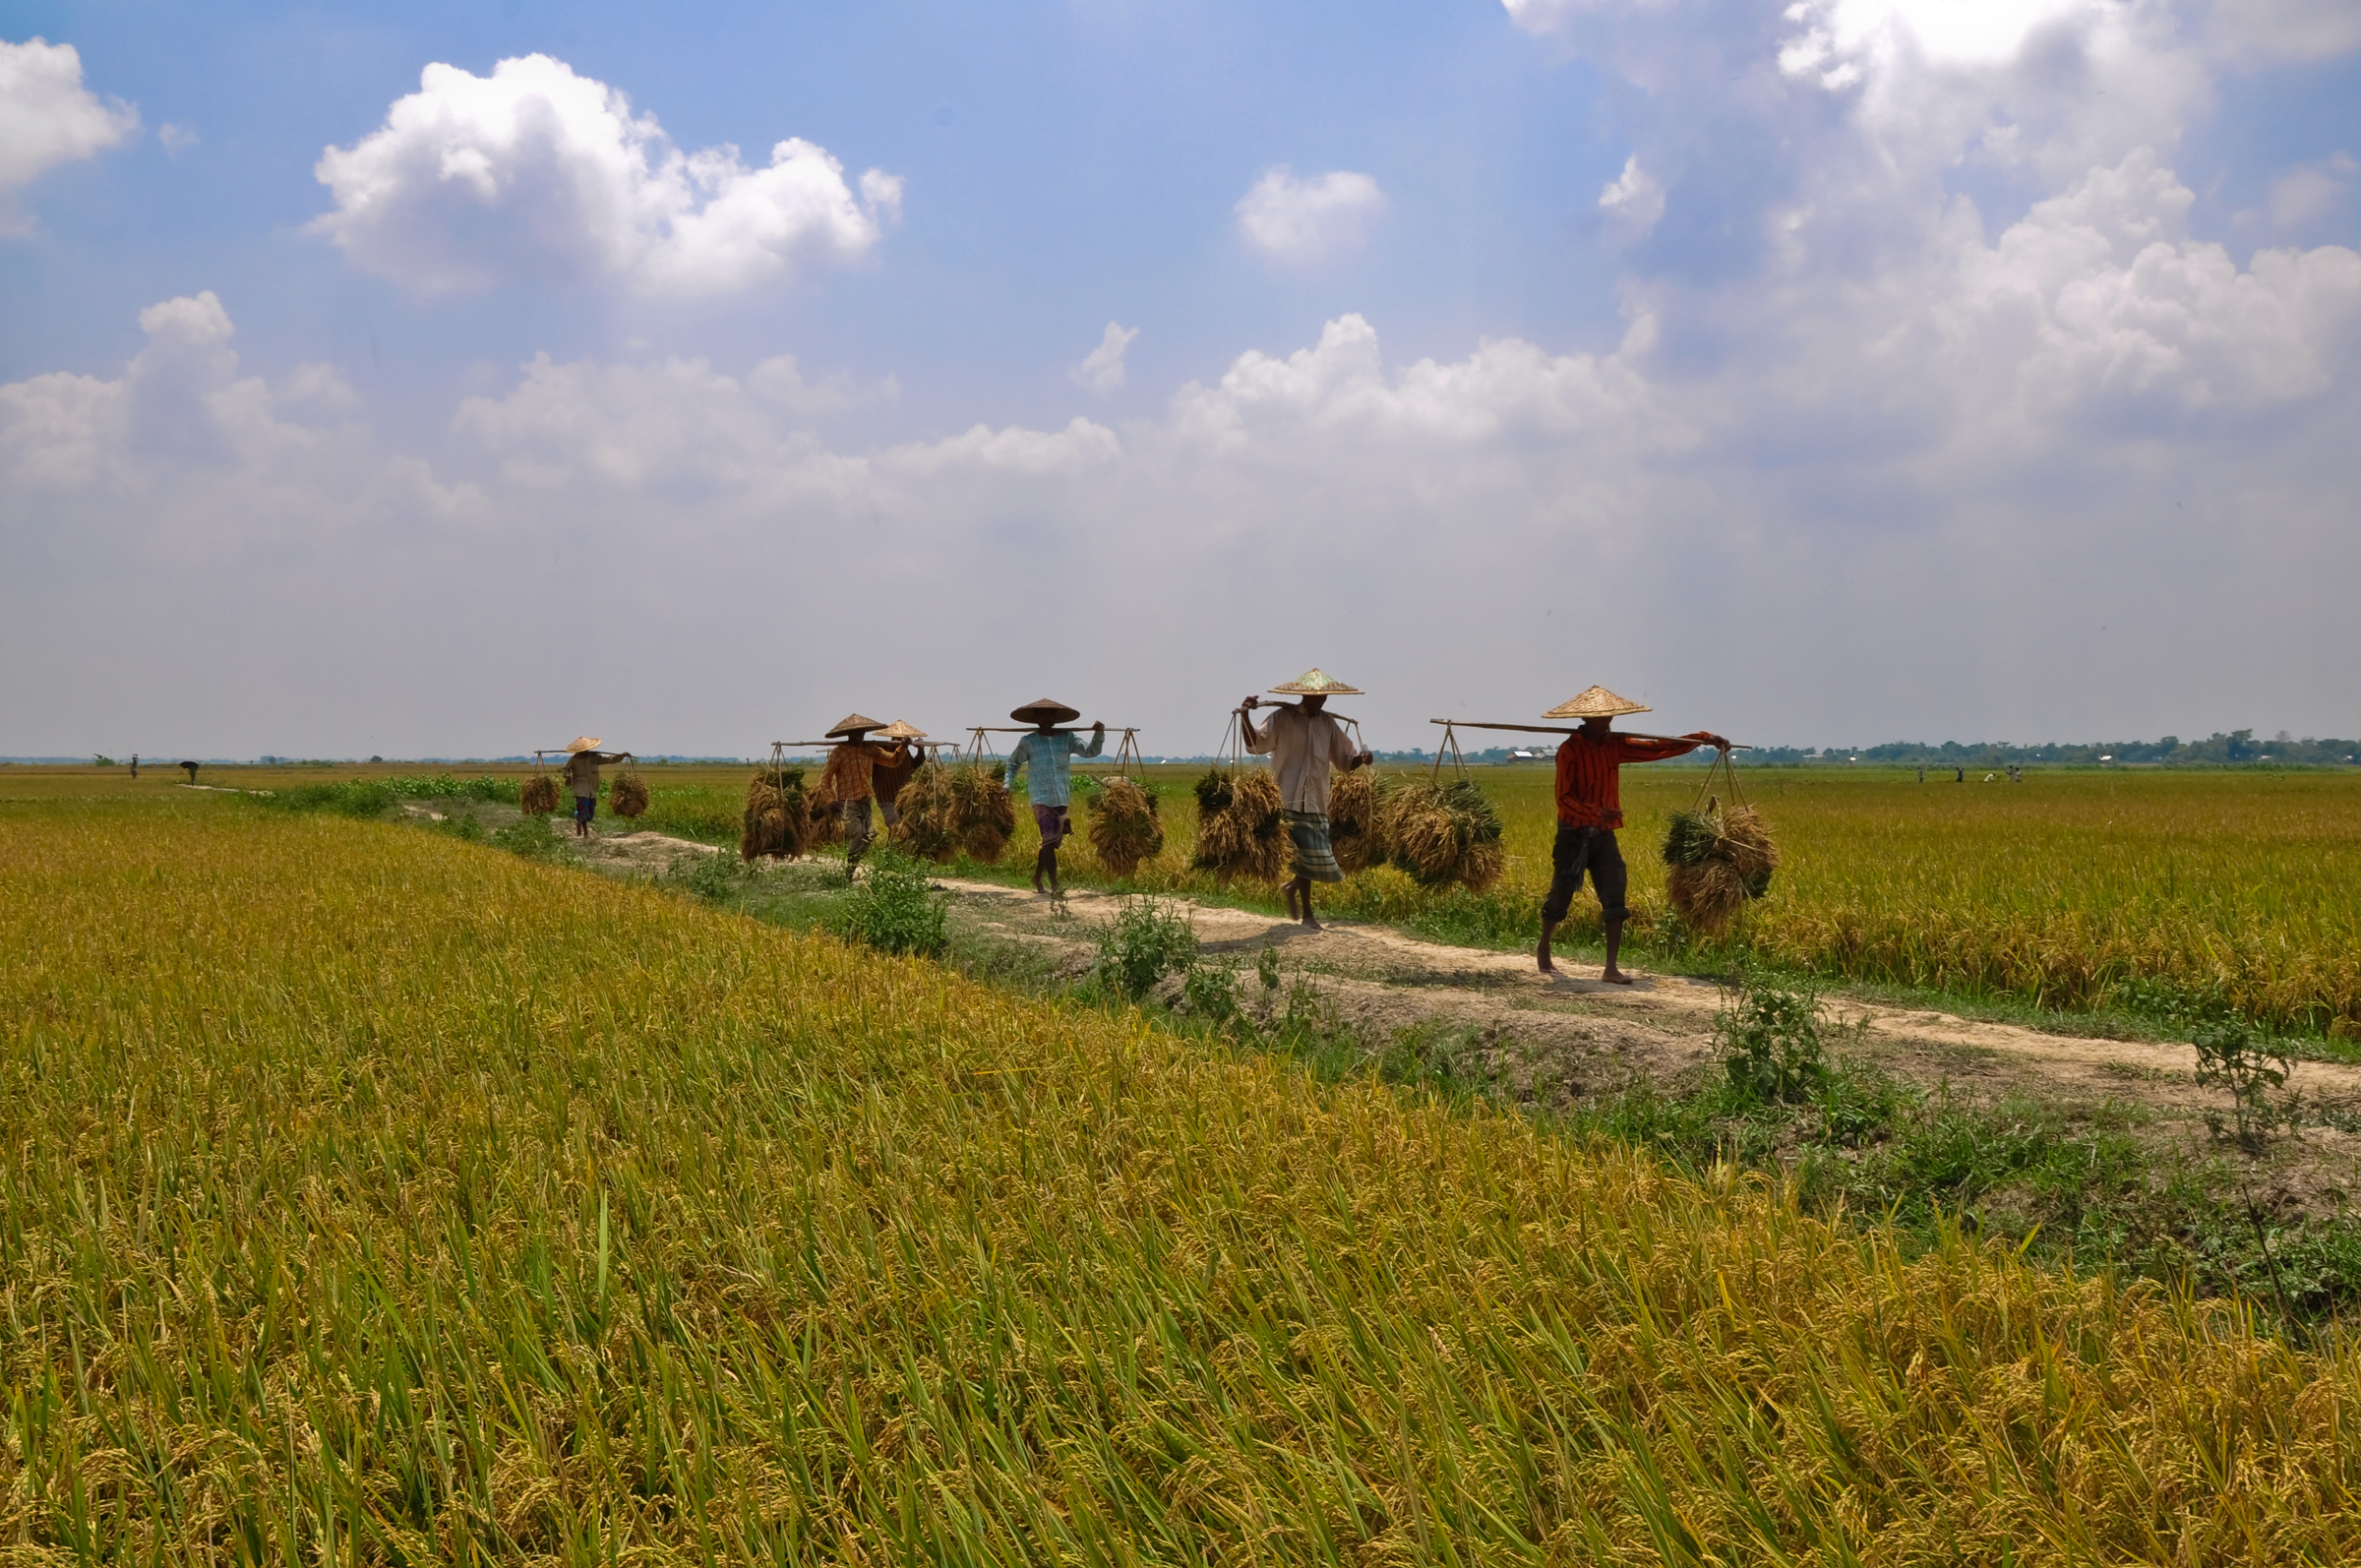 Agriculture in Bangladesh